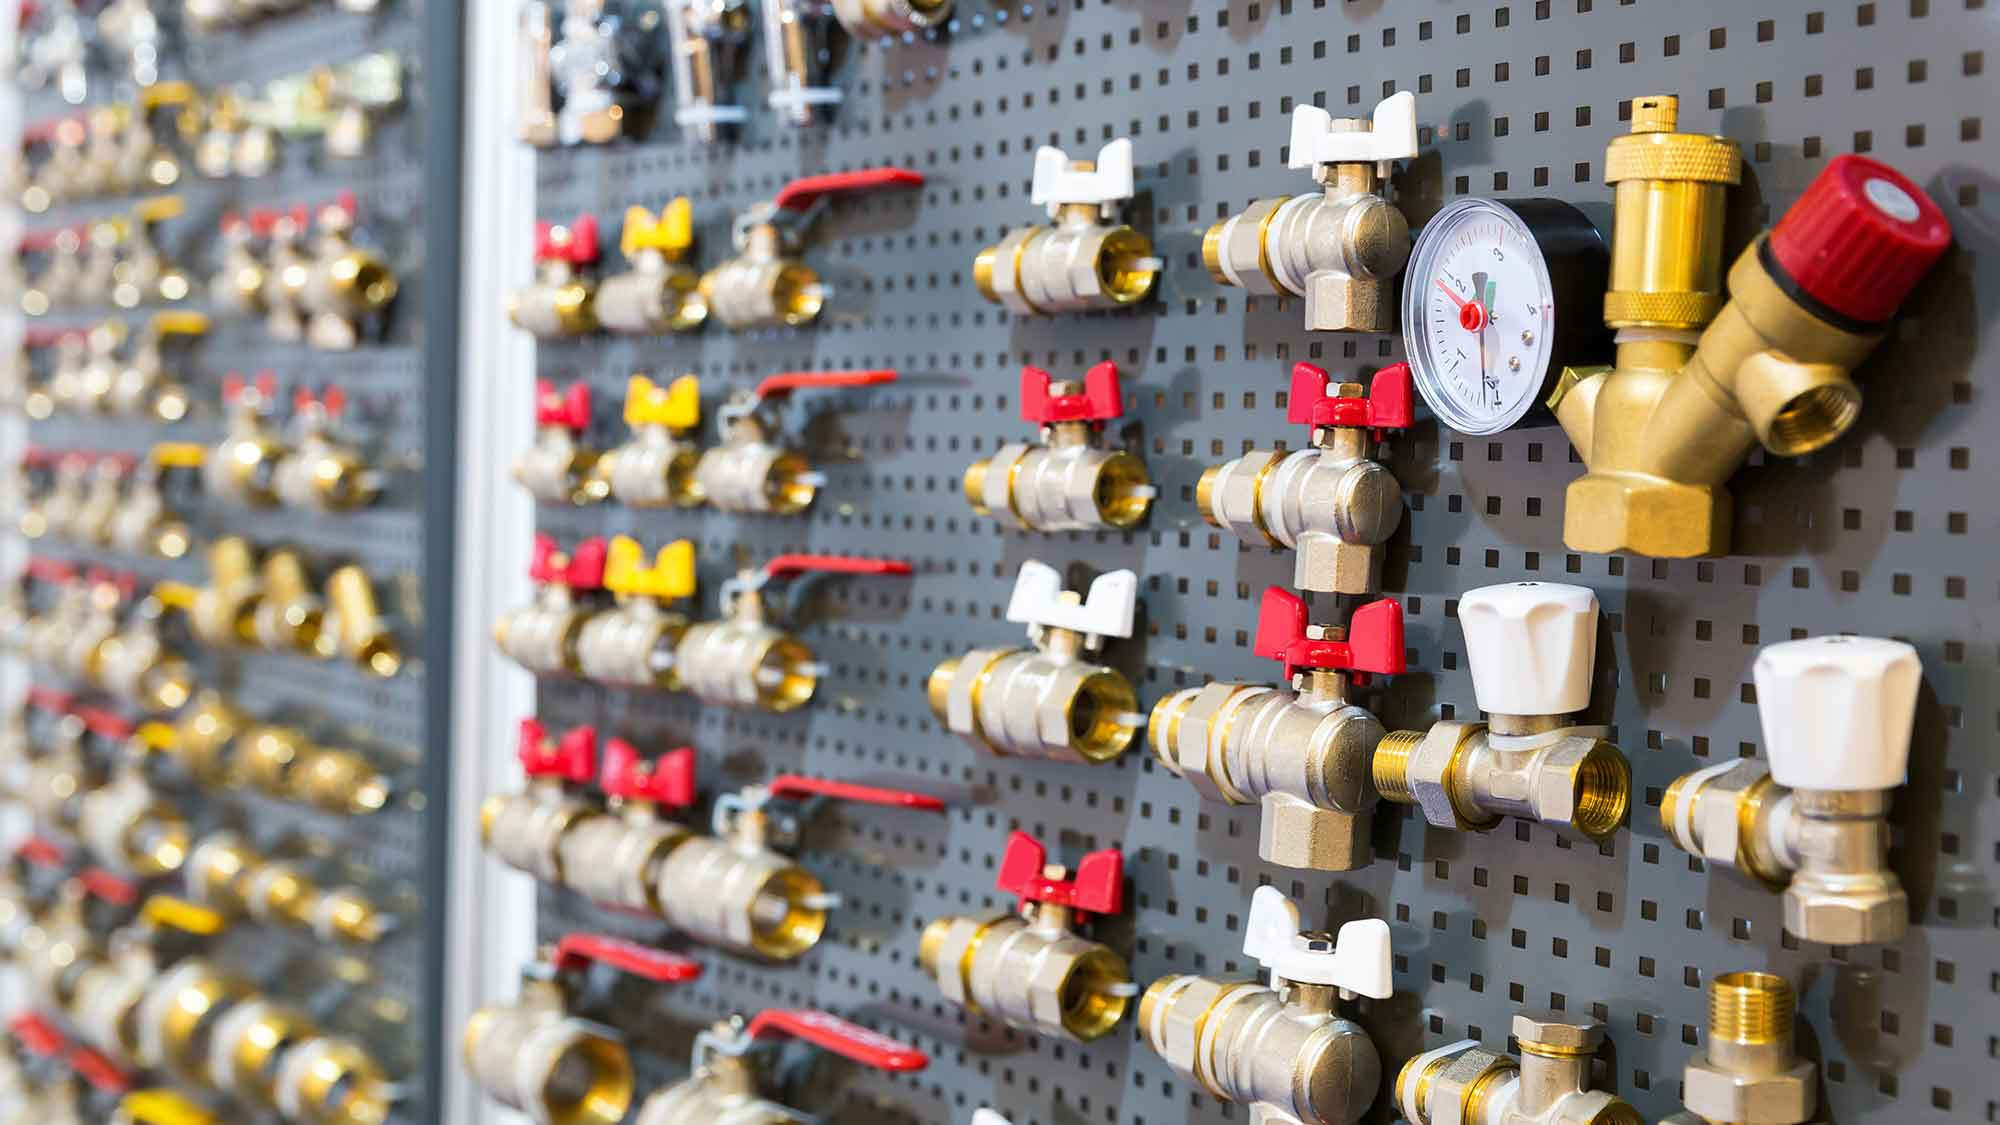 commercial heating solutions essex maintenance leigh on sea parts